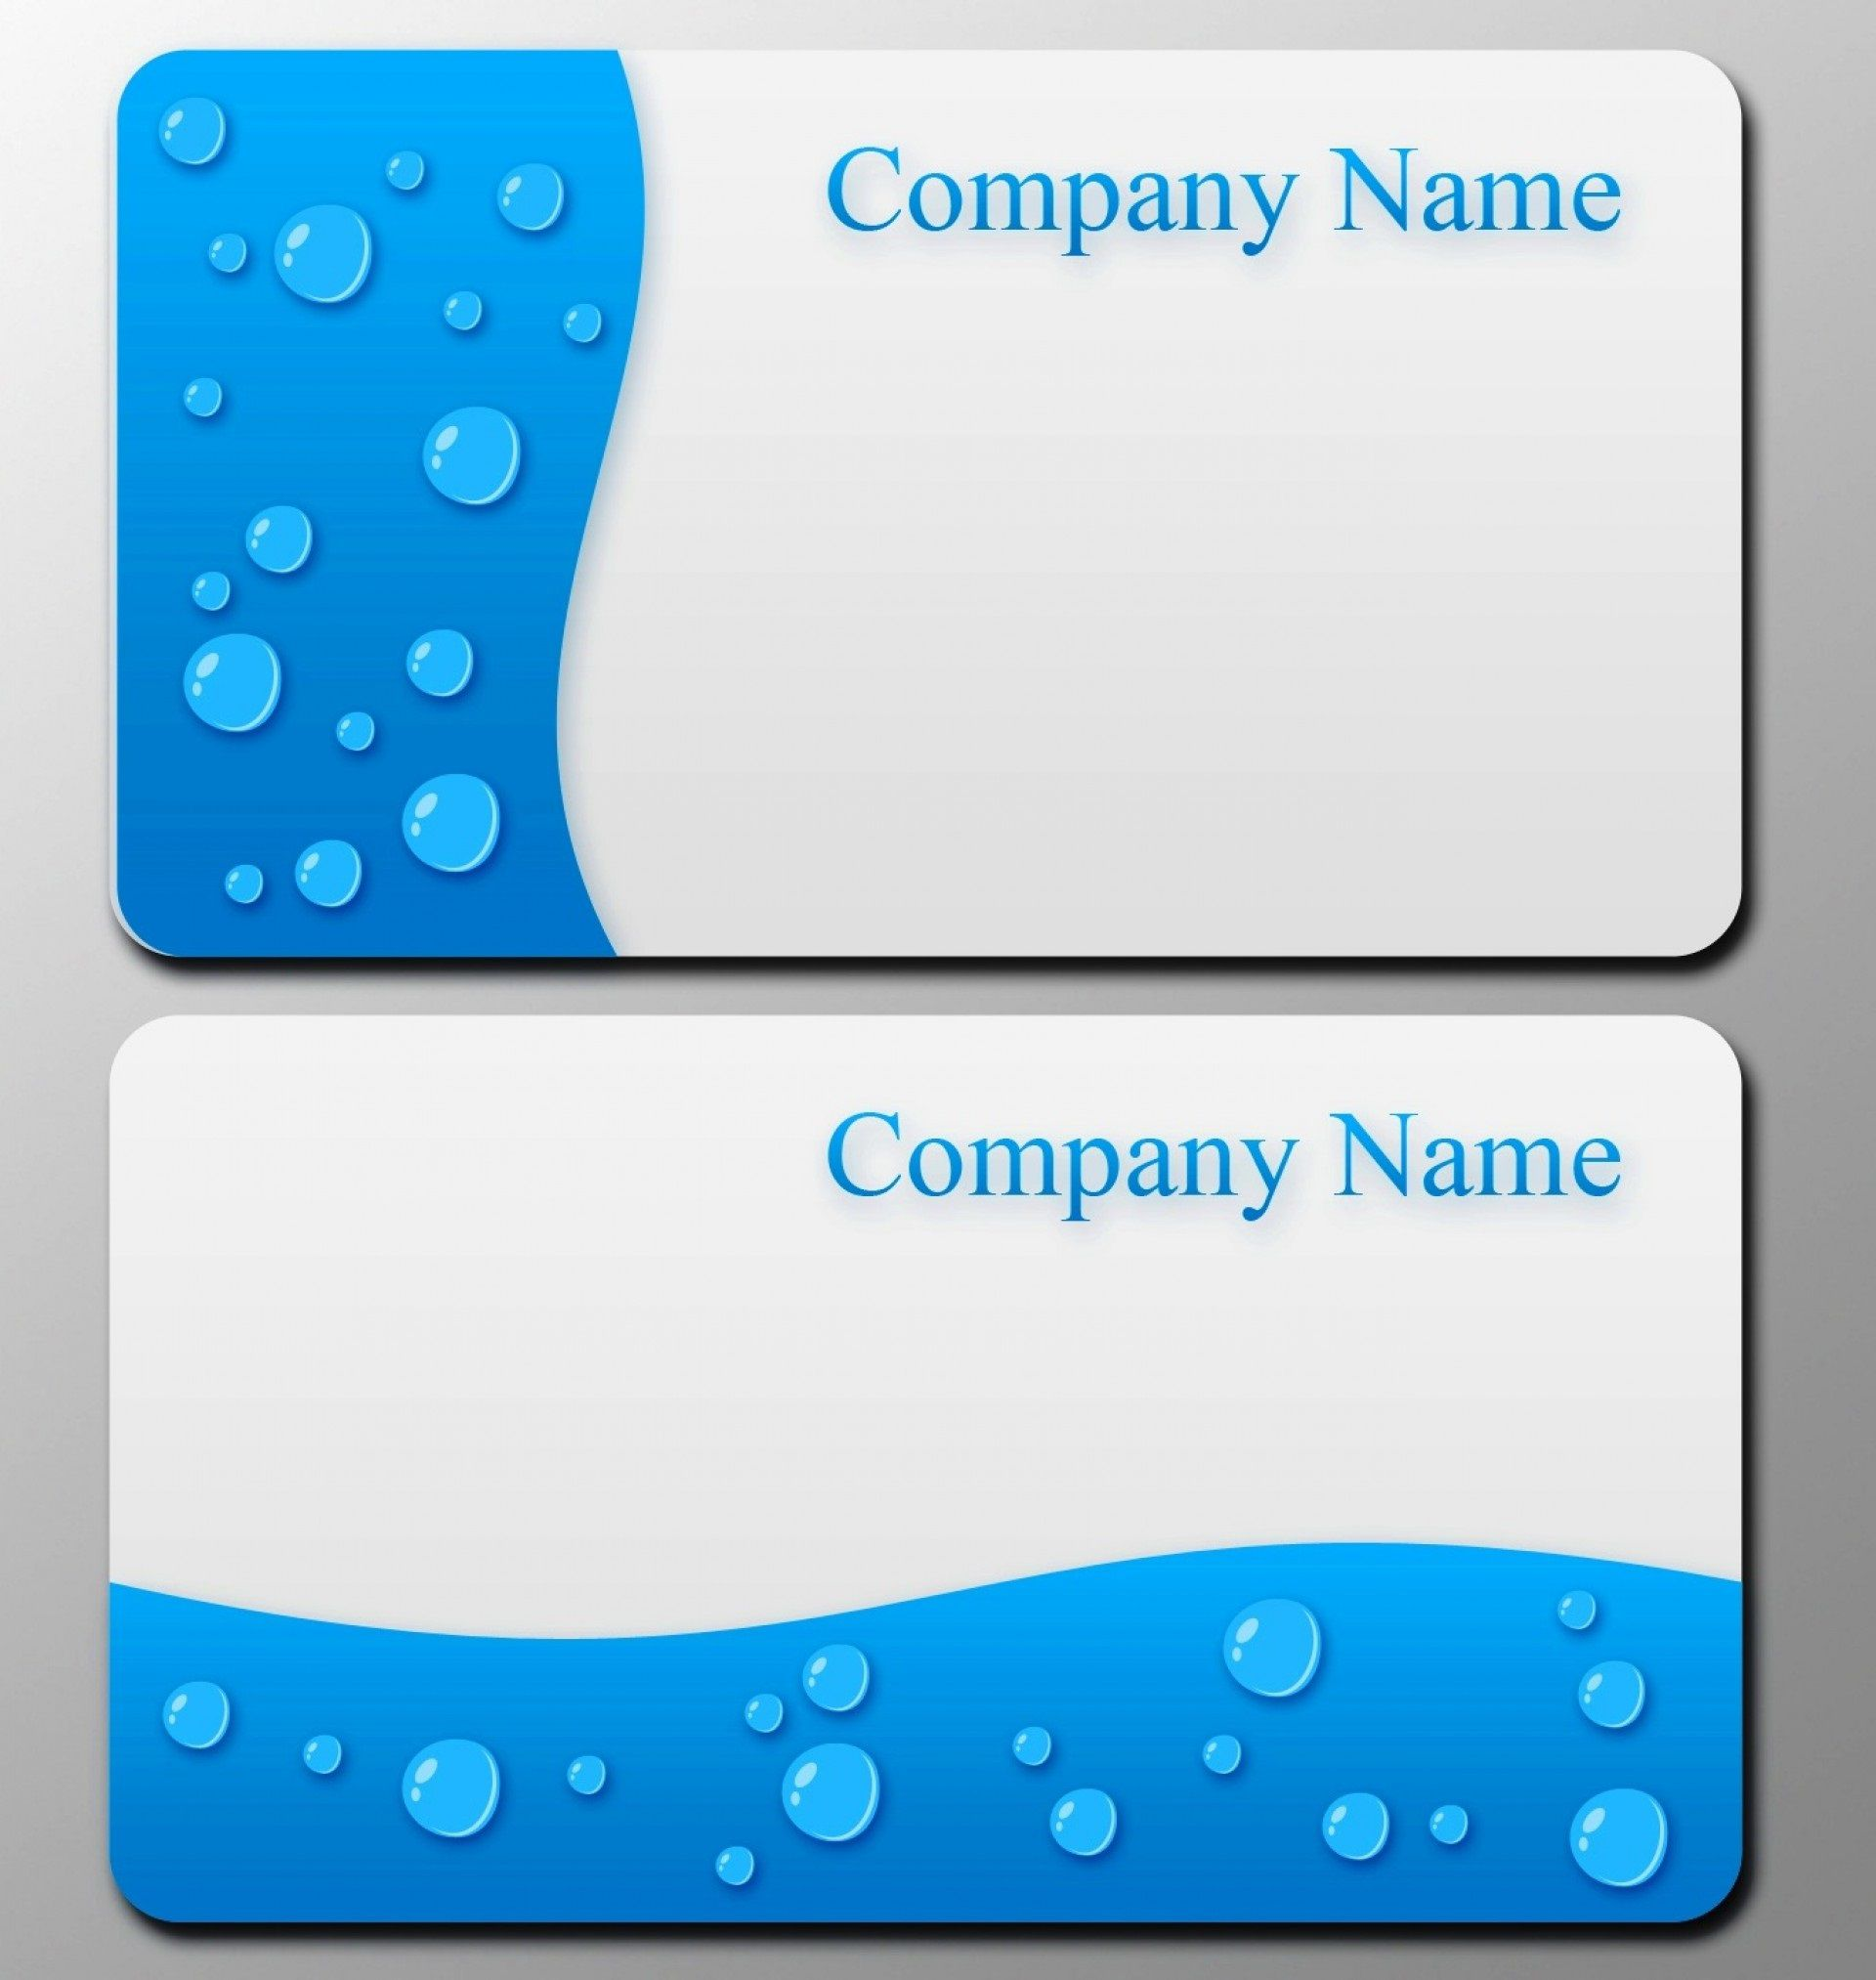 008 Astounding Blank Busines Card Template Photoshop Image  Free Download PsdFull